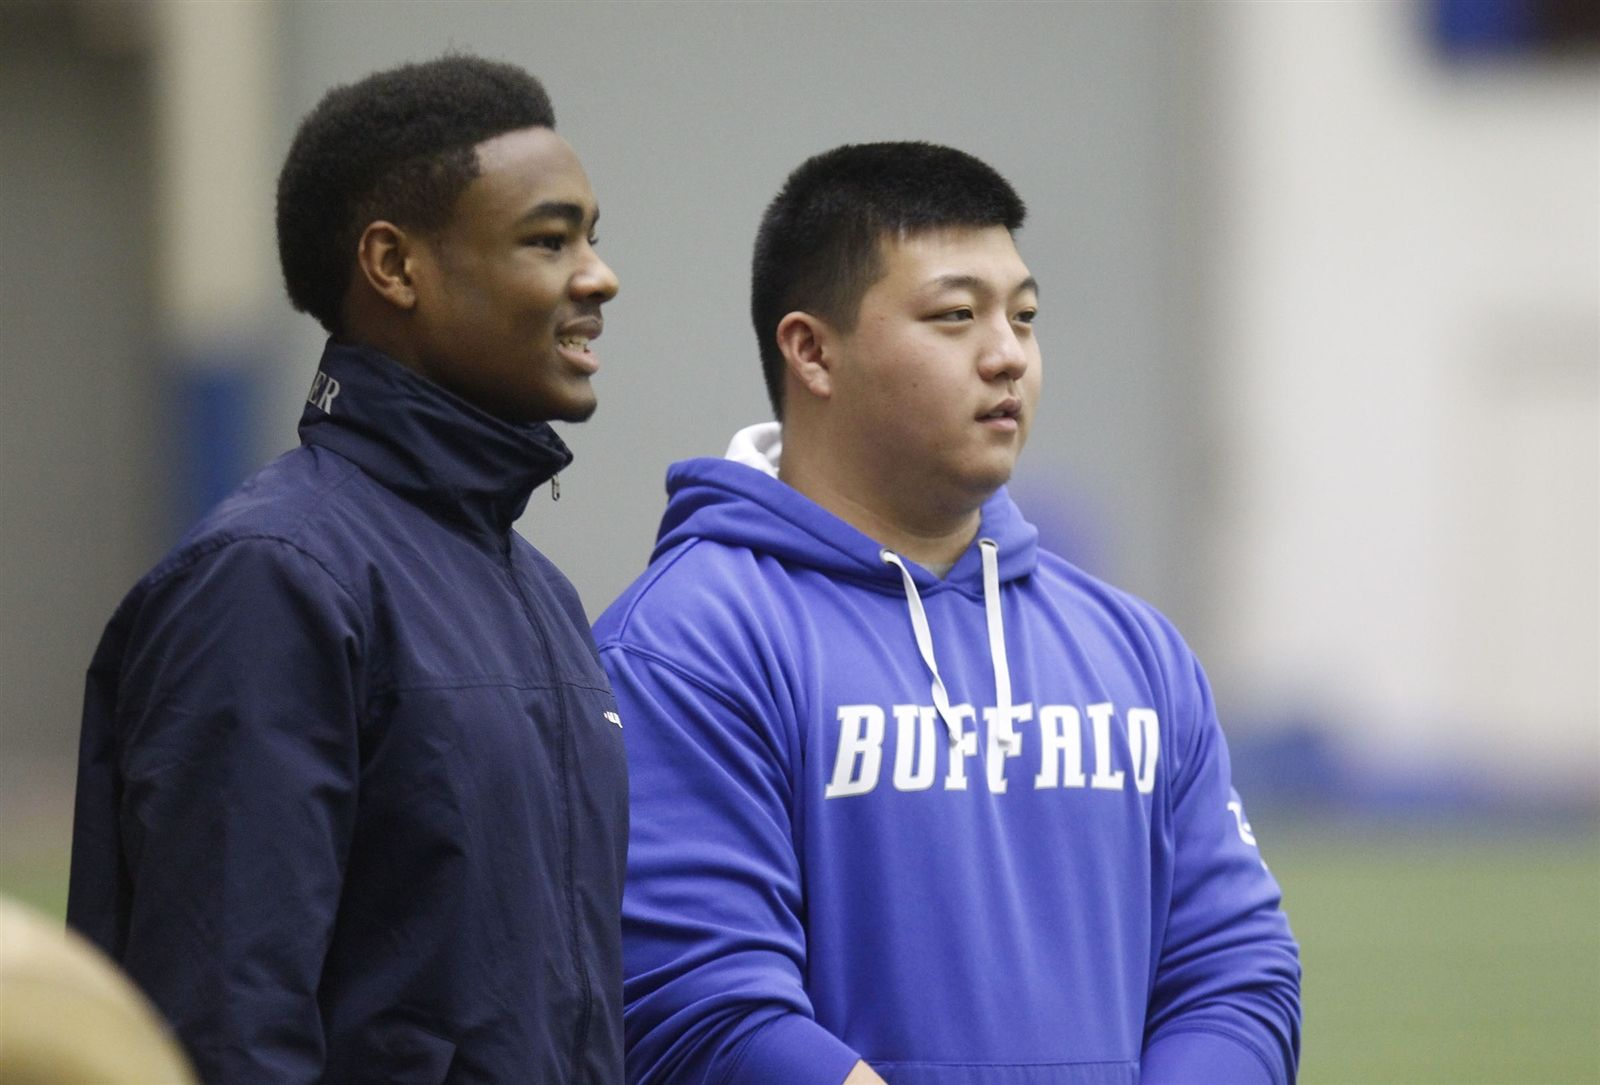 University at Buffalo football player during spring practice.